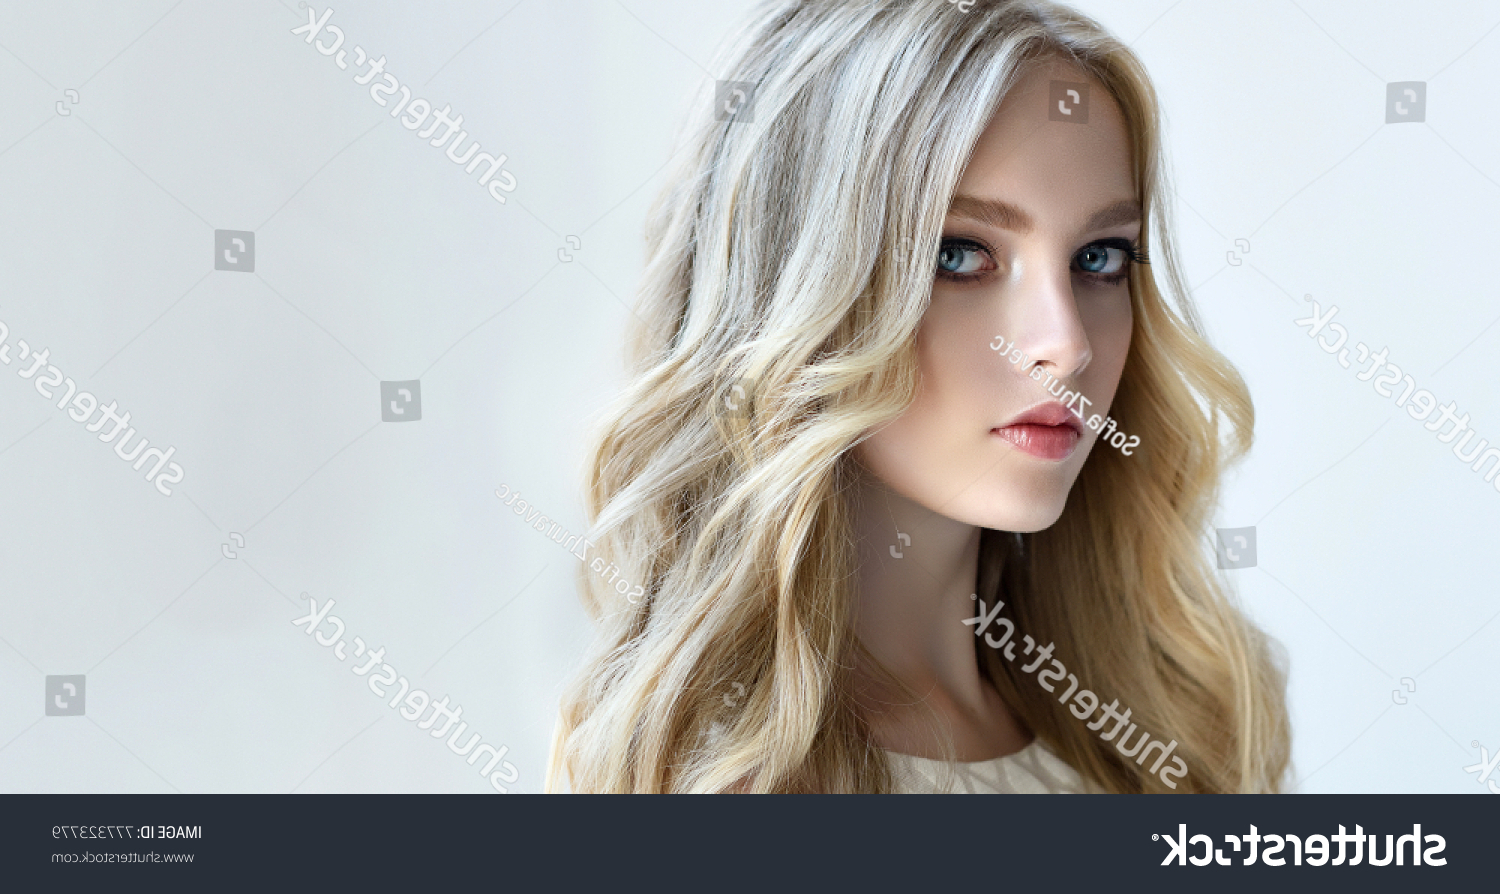 Стоковая Фотография «Blonde Fashion Girl Long Shiny Curly» (Изменить Pertaining To Most Up To Date Shiny Tousled Curls Hairstyles (View 20 of 20)